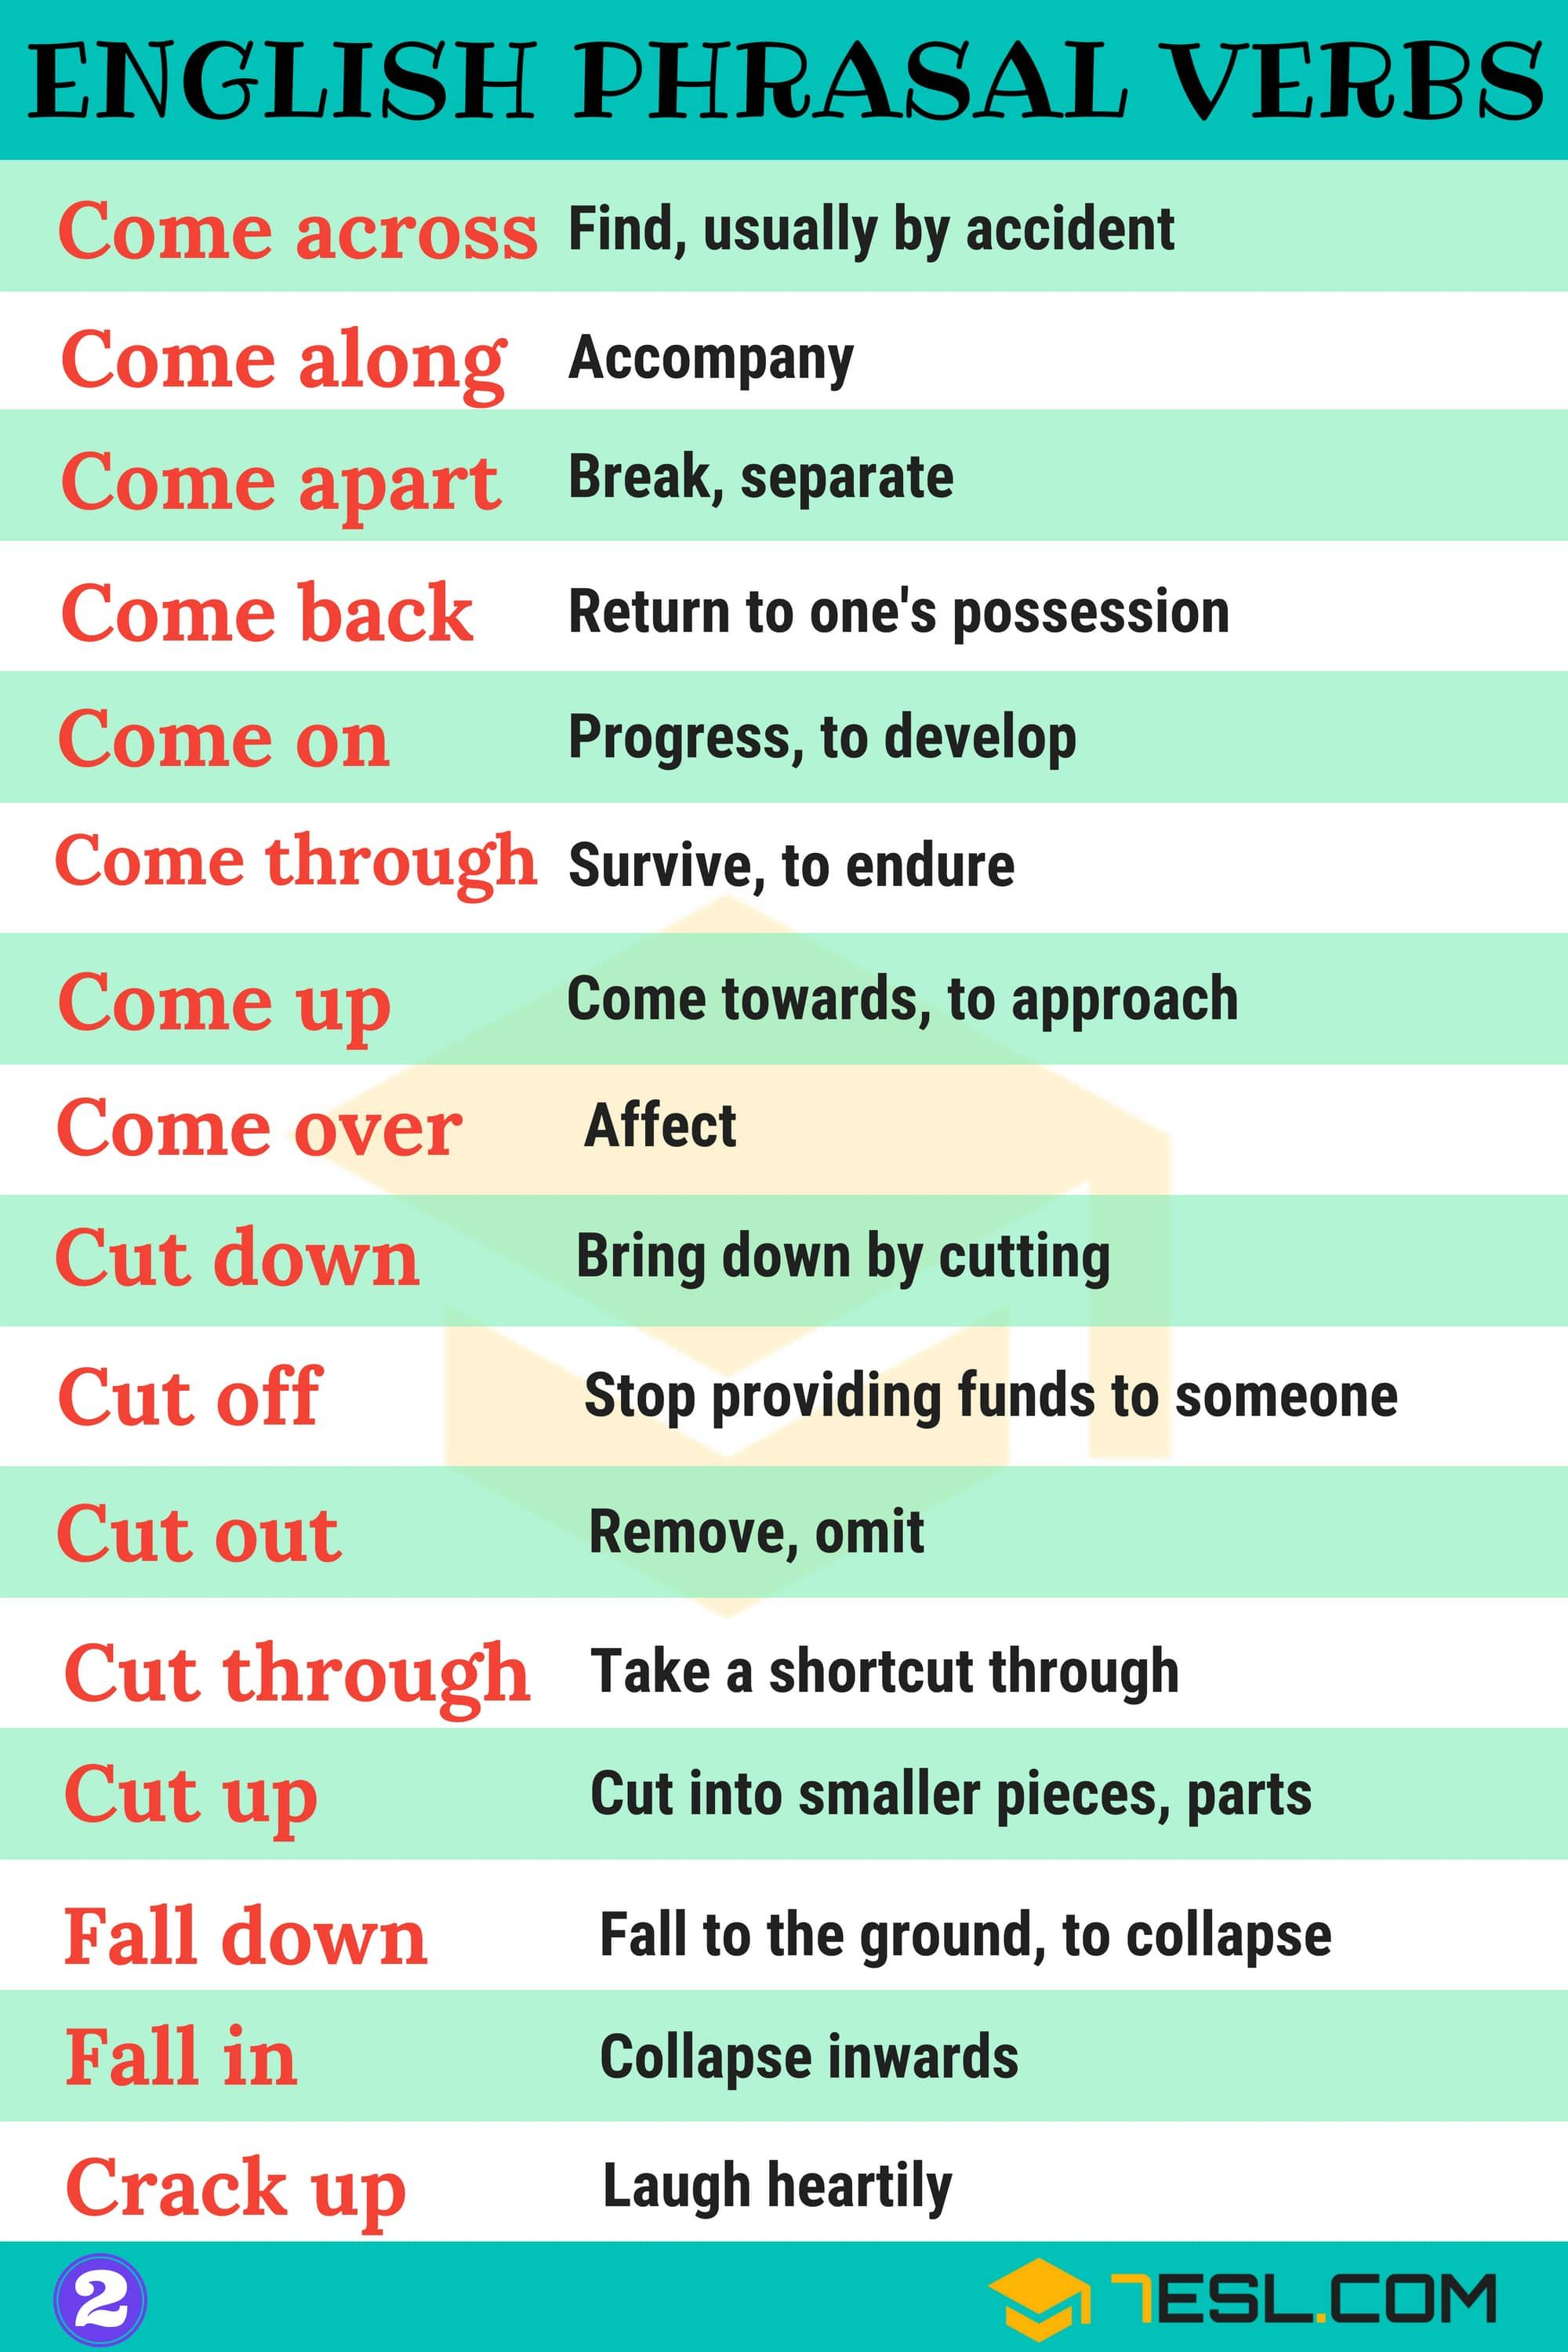 2000 Common Phrasal Verbs List From A Z With Images English